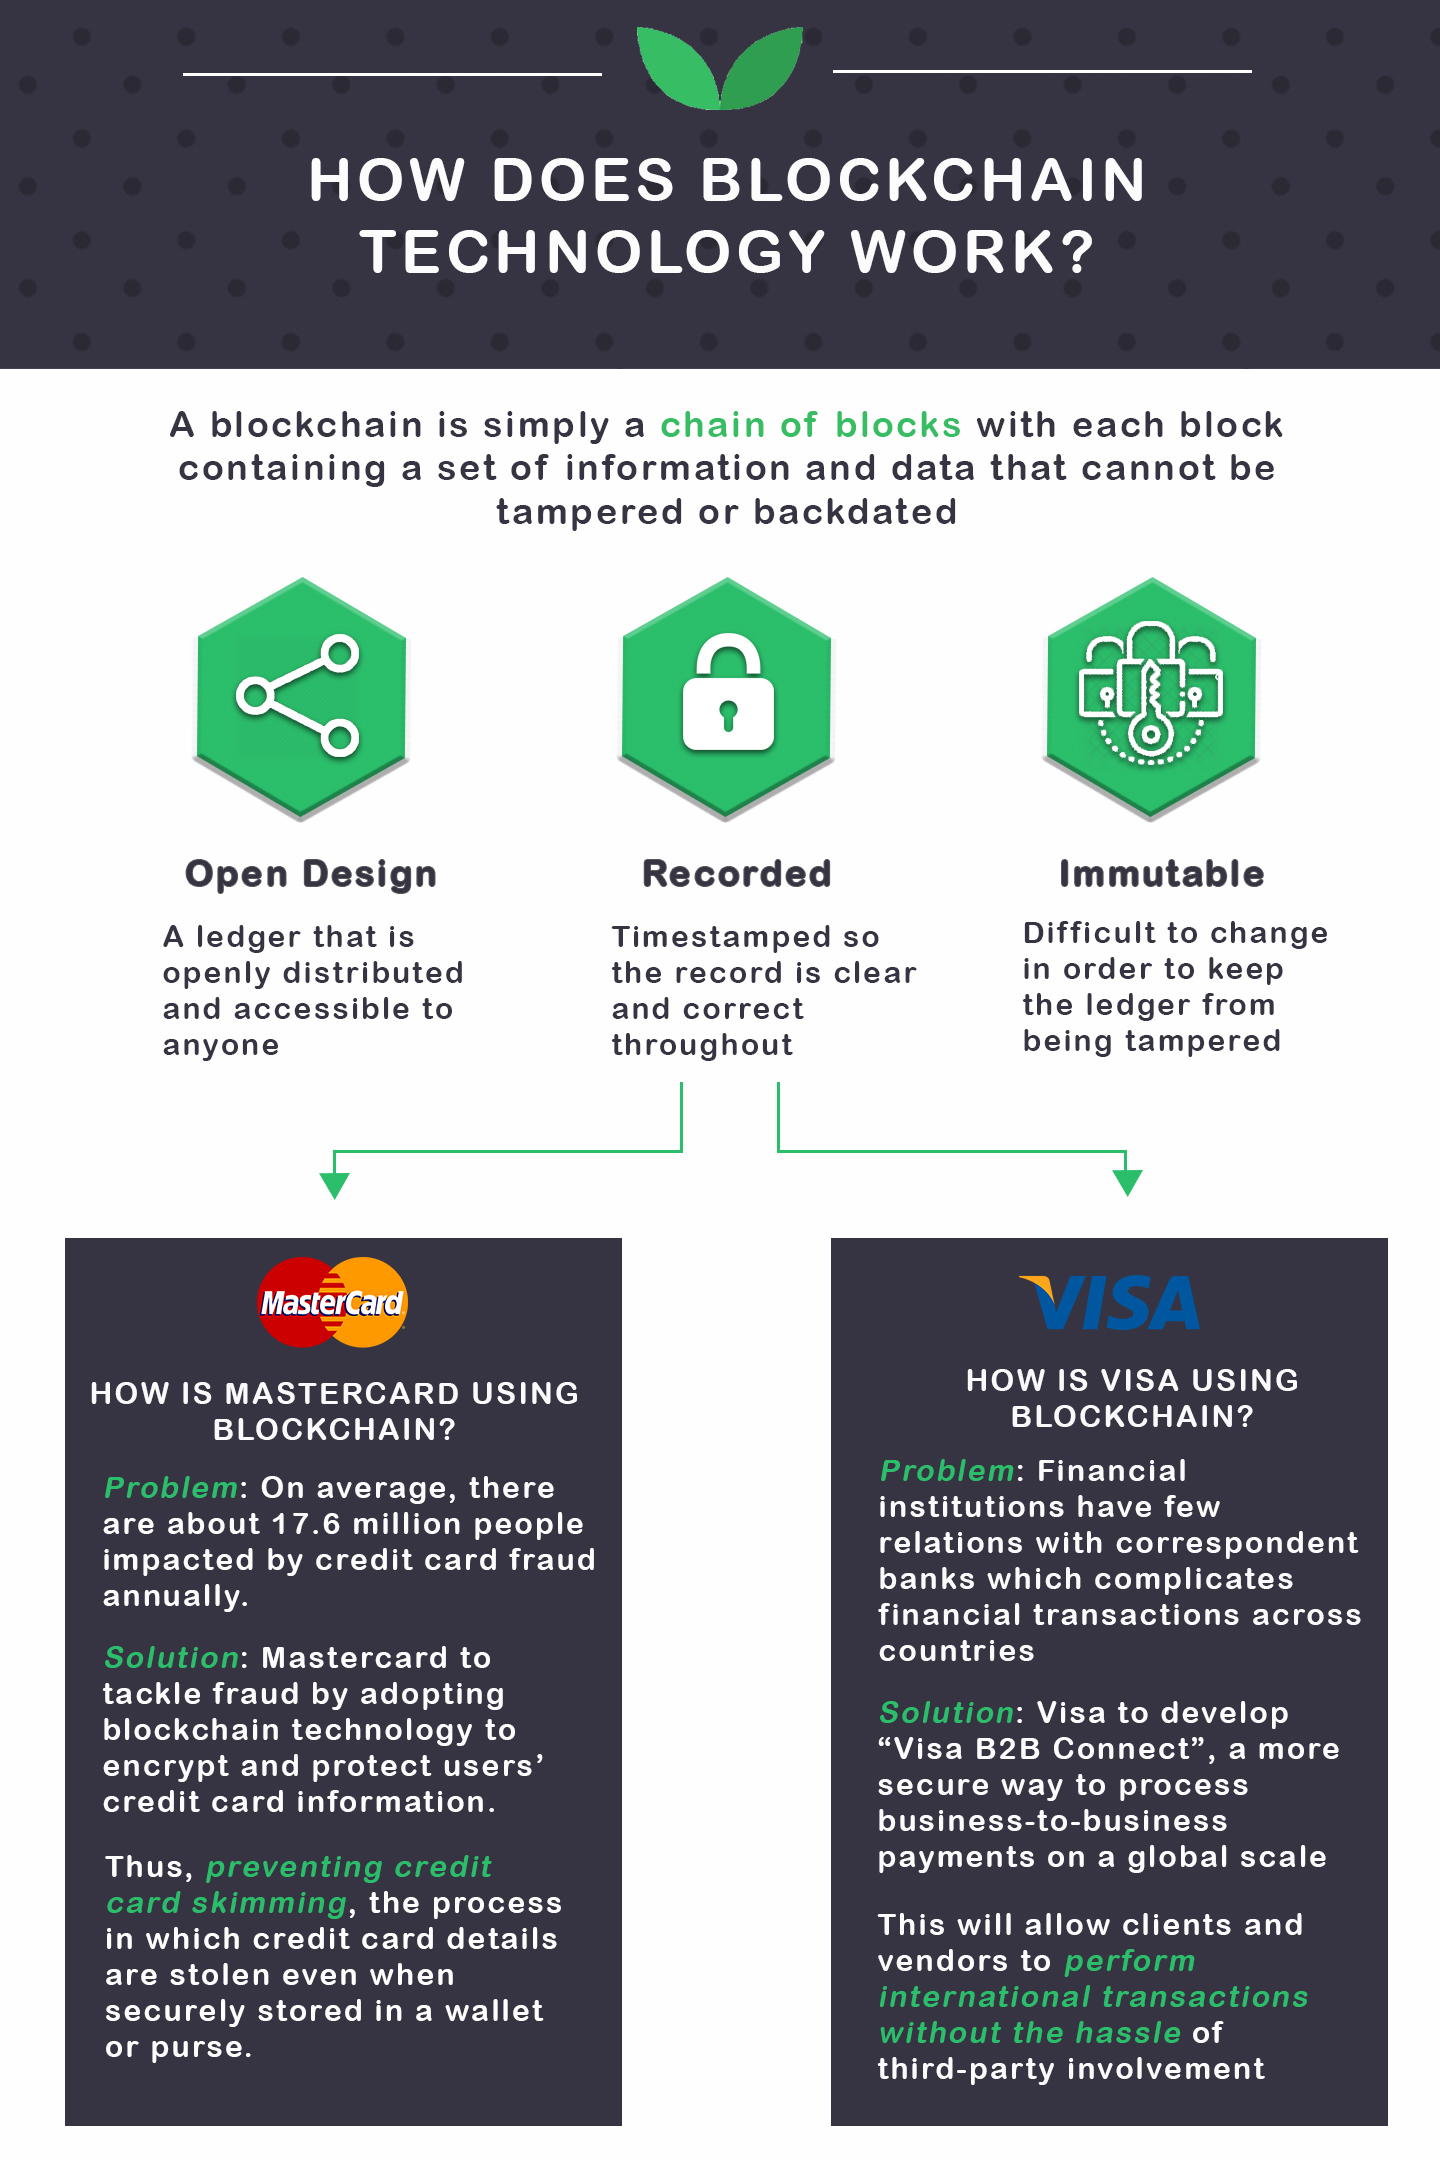 Visa vs Mastercard blockchain use cases